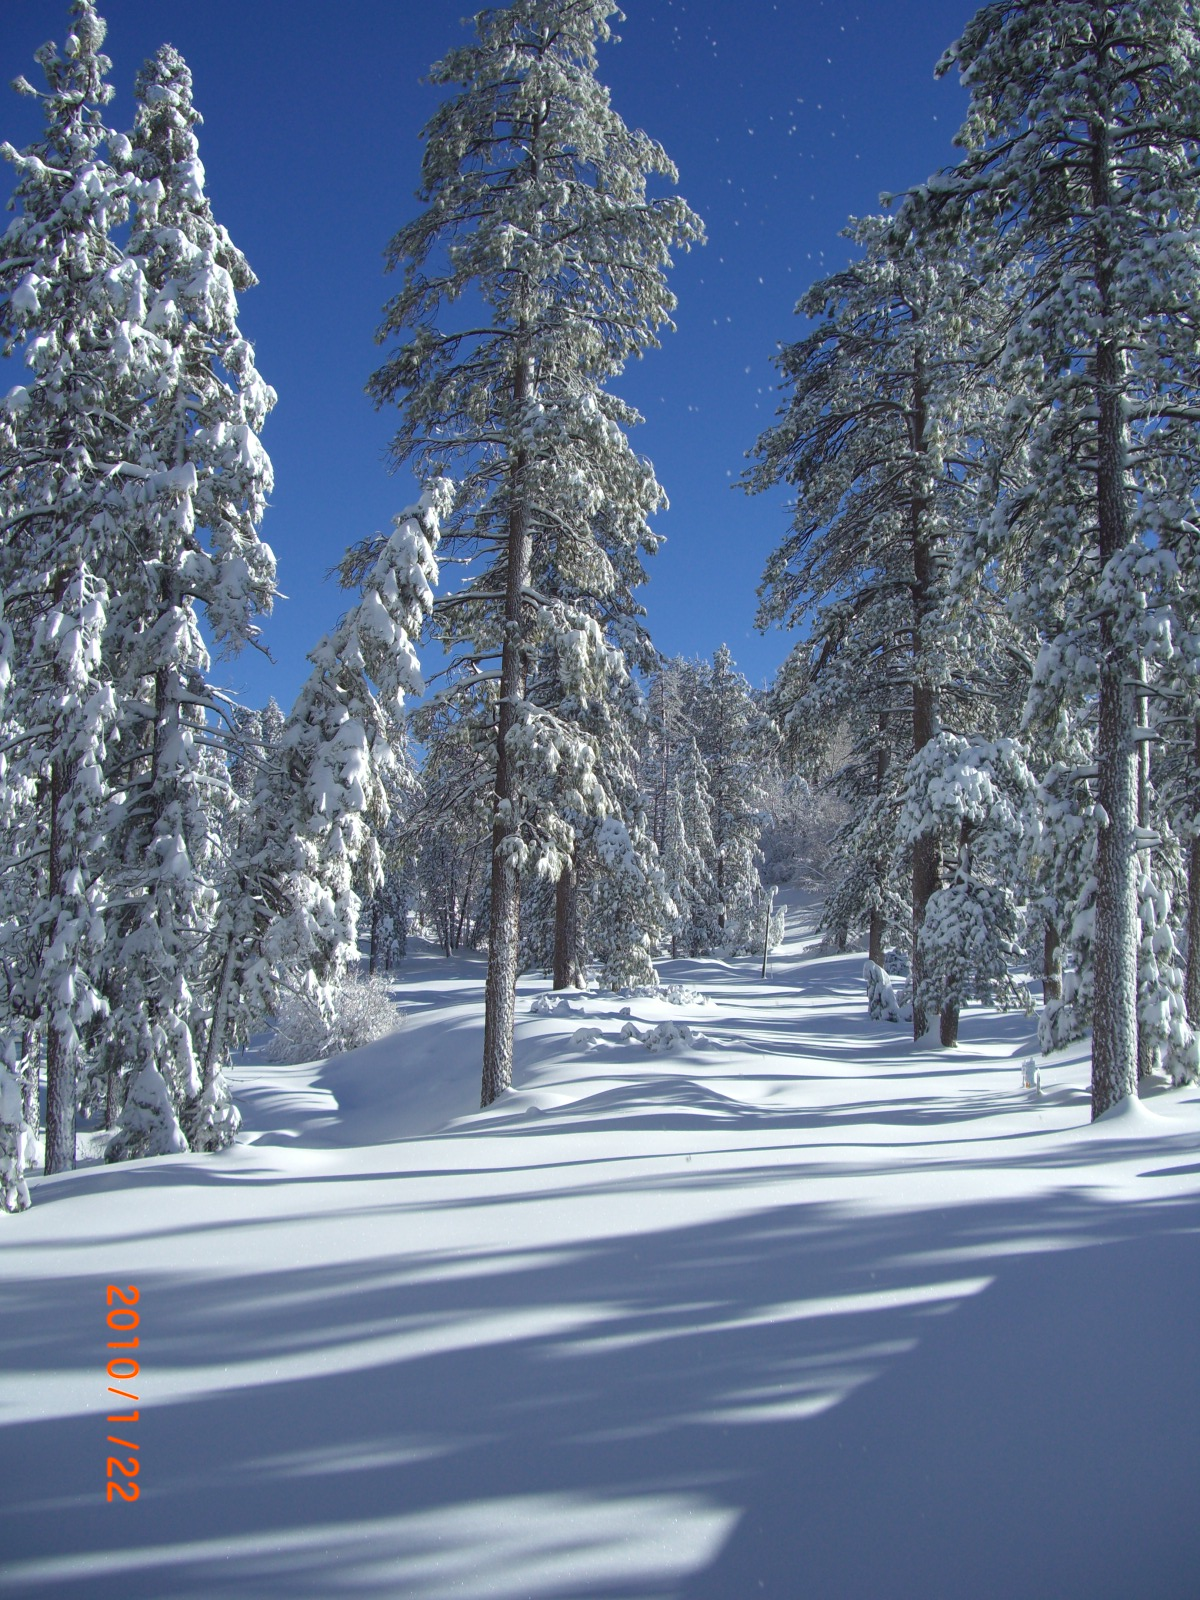 Grooming The Cross Country Ski Trails